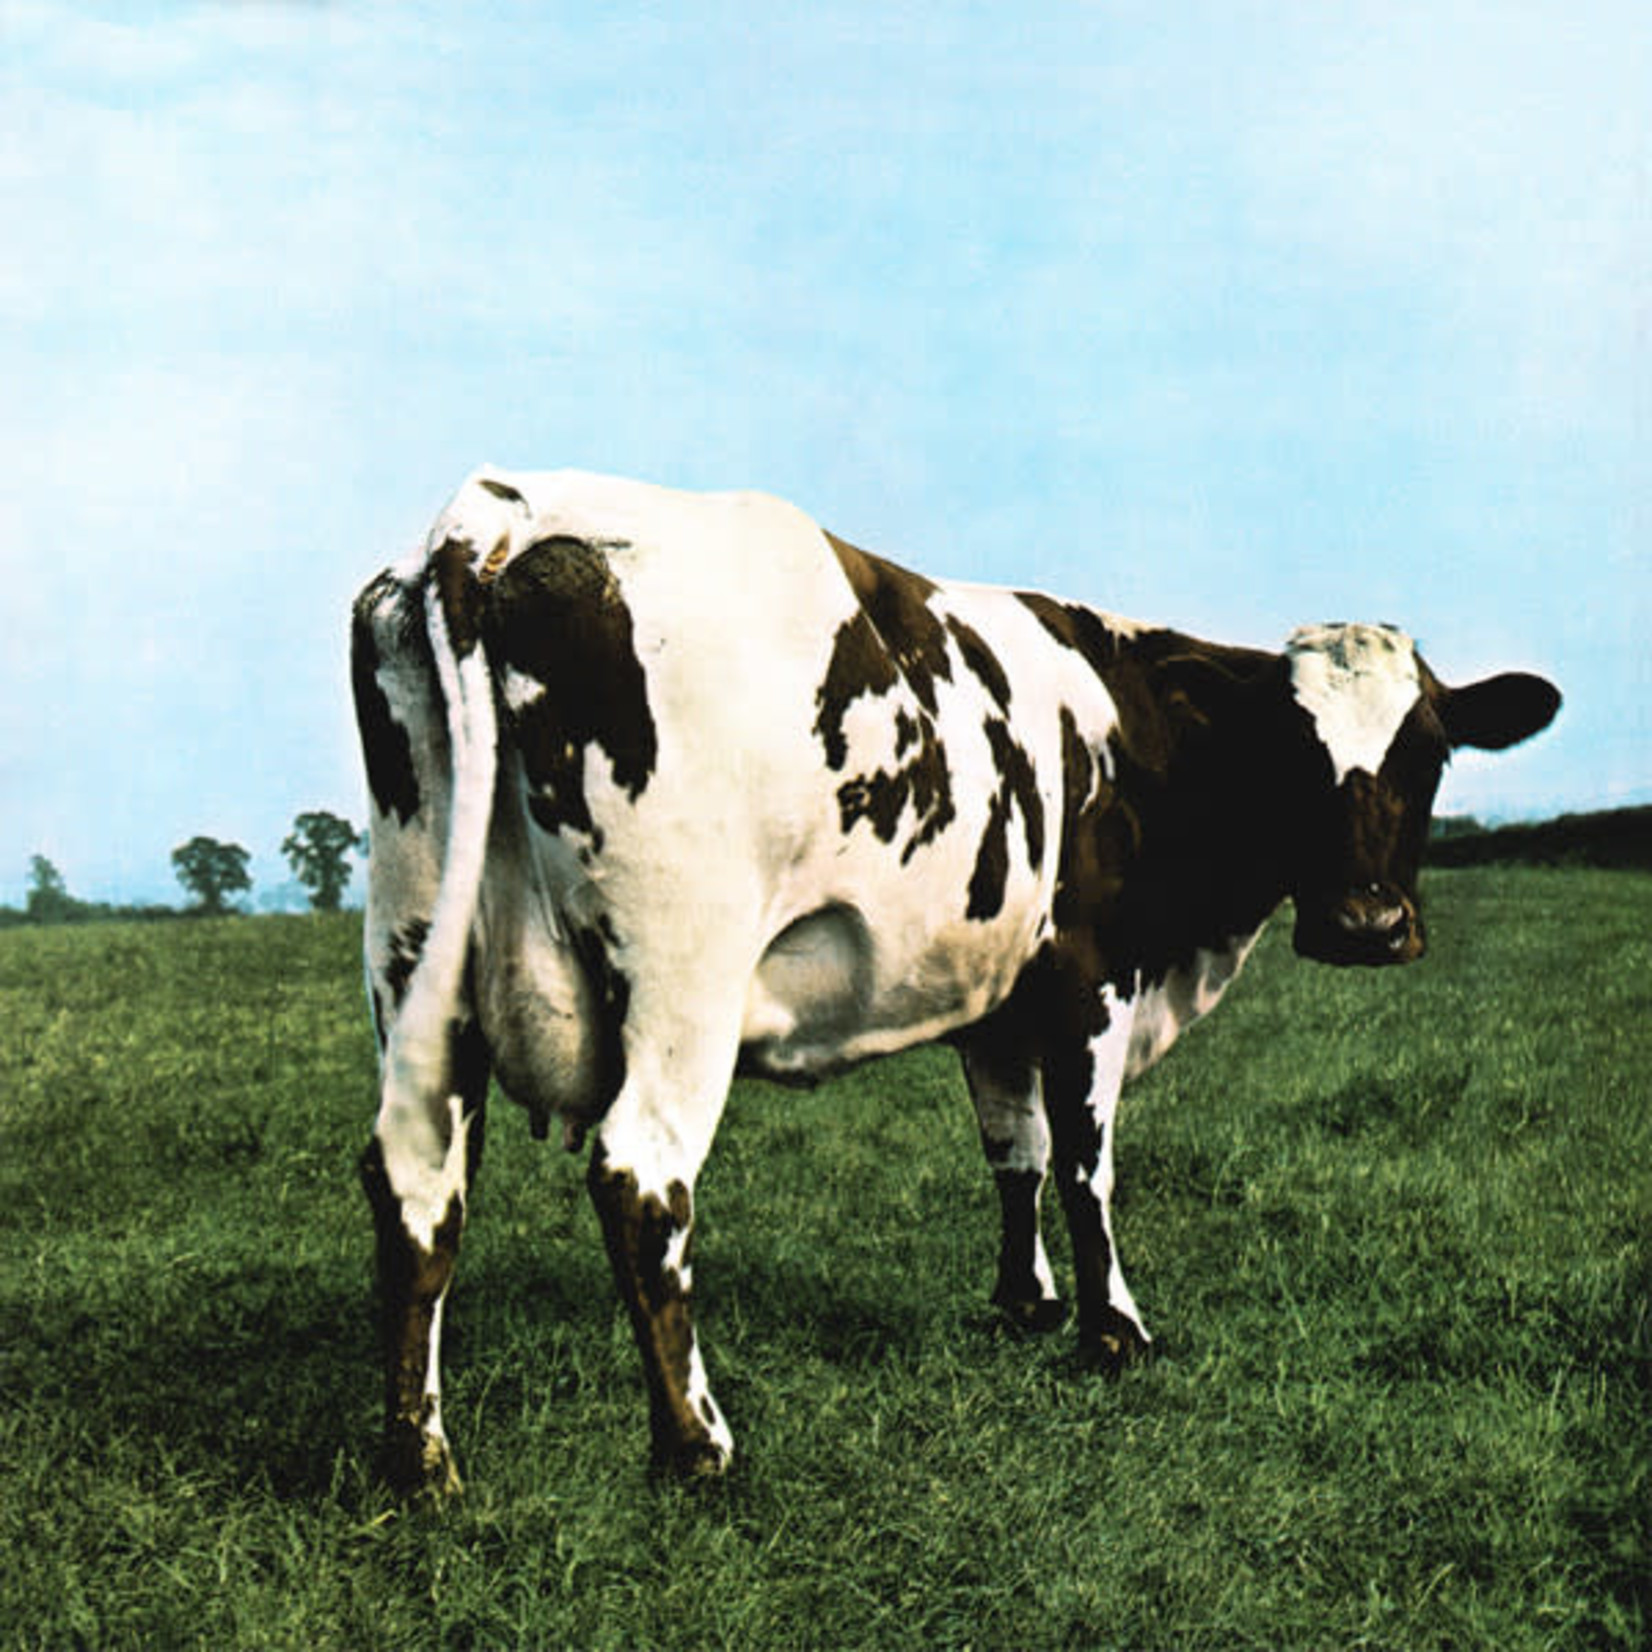 PINK FLOYD ATOM HEART MOTHER (STEREO REMASTERED)